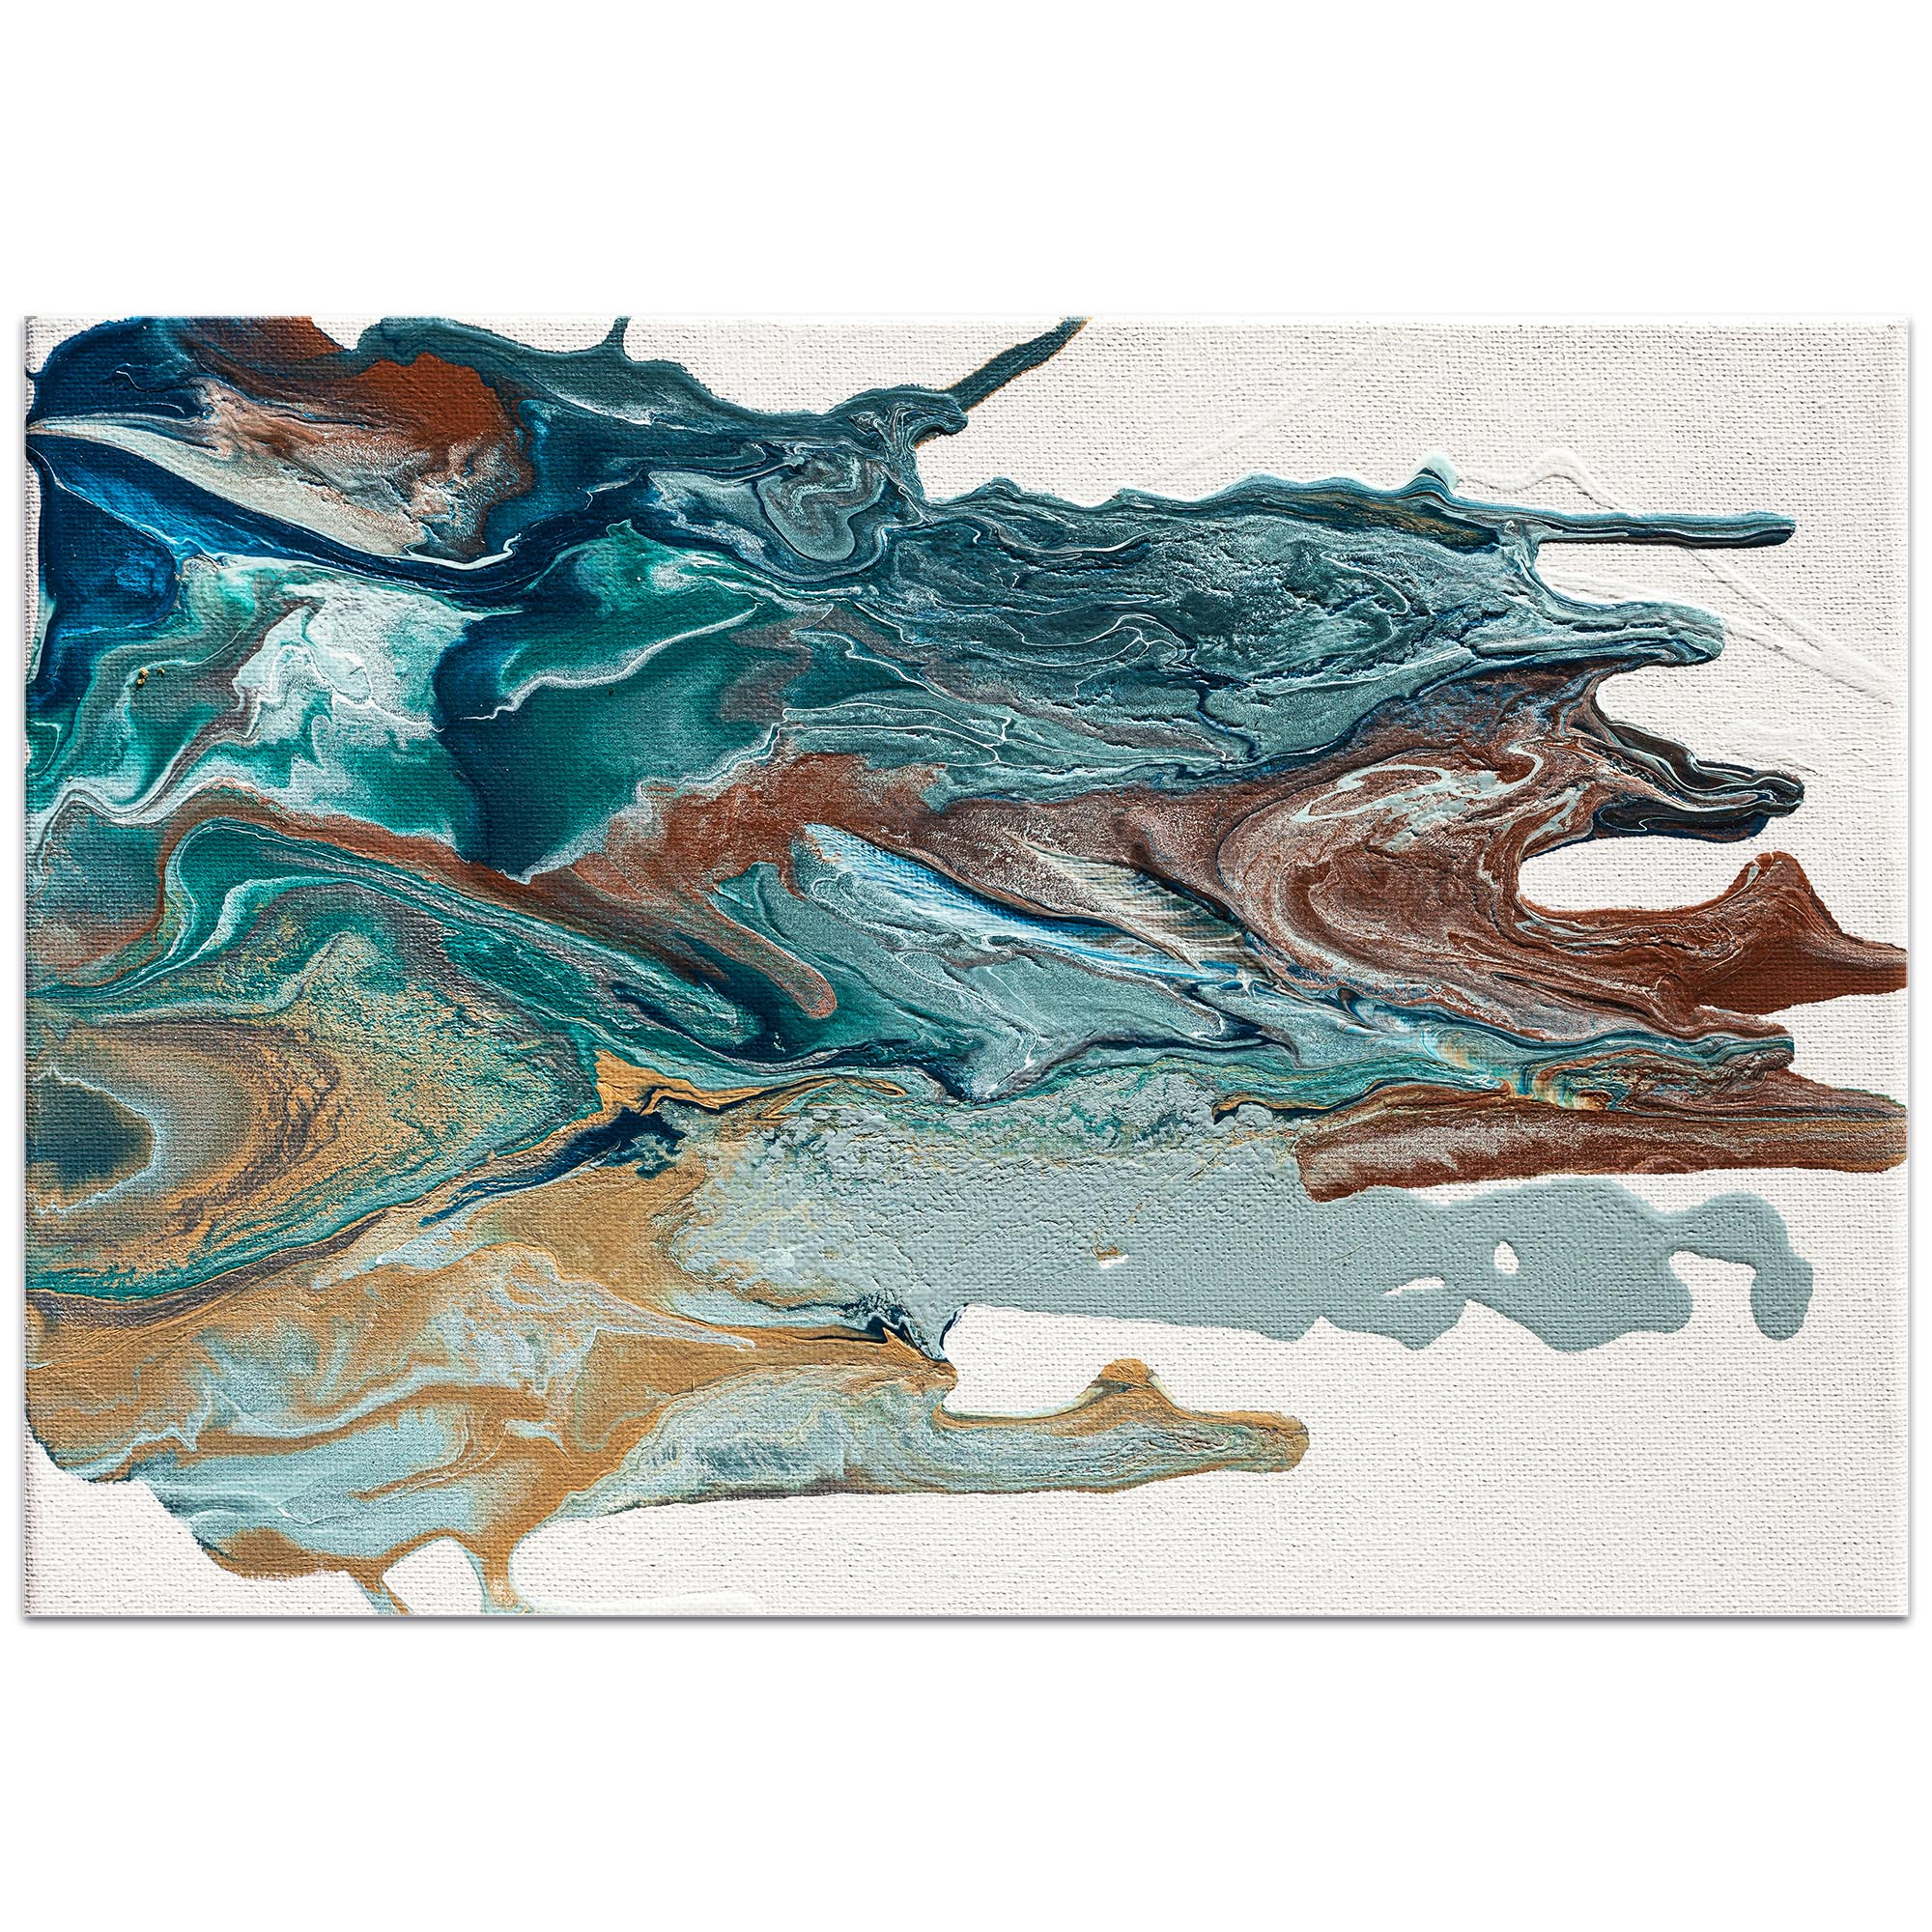 Abstract Wall Art 'Earth 1' - Urban Splatter Decor on Metal or Plexiglass - Image 2